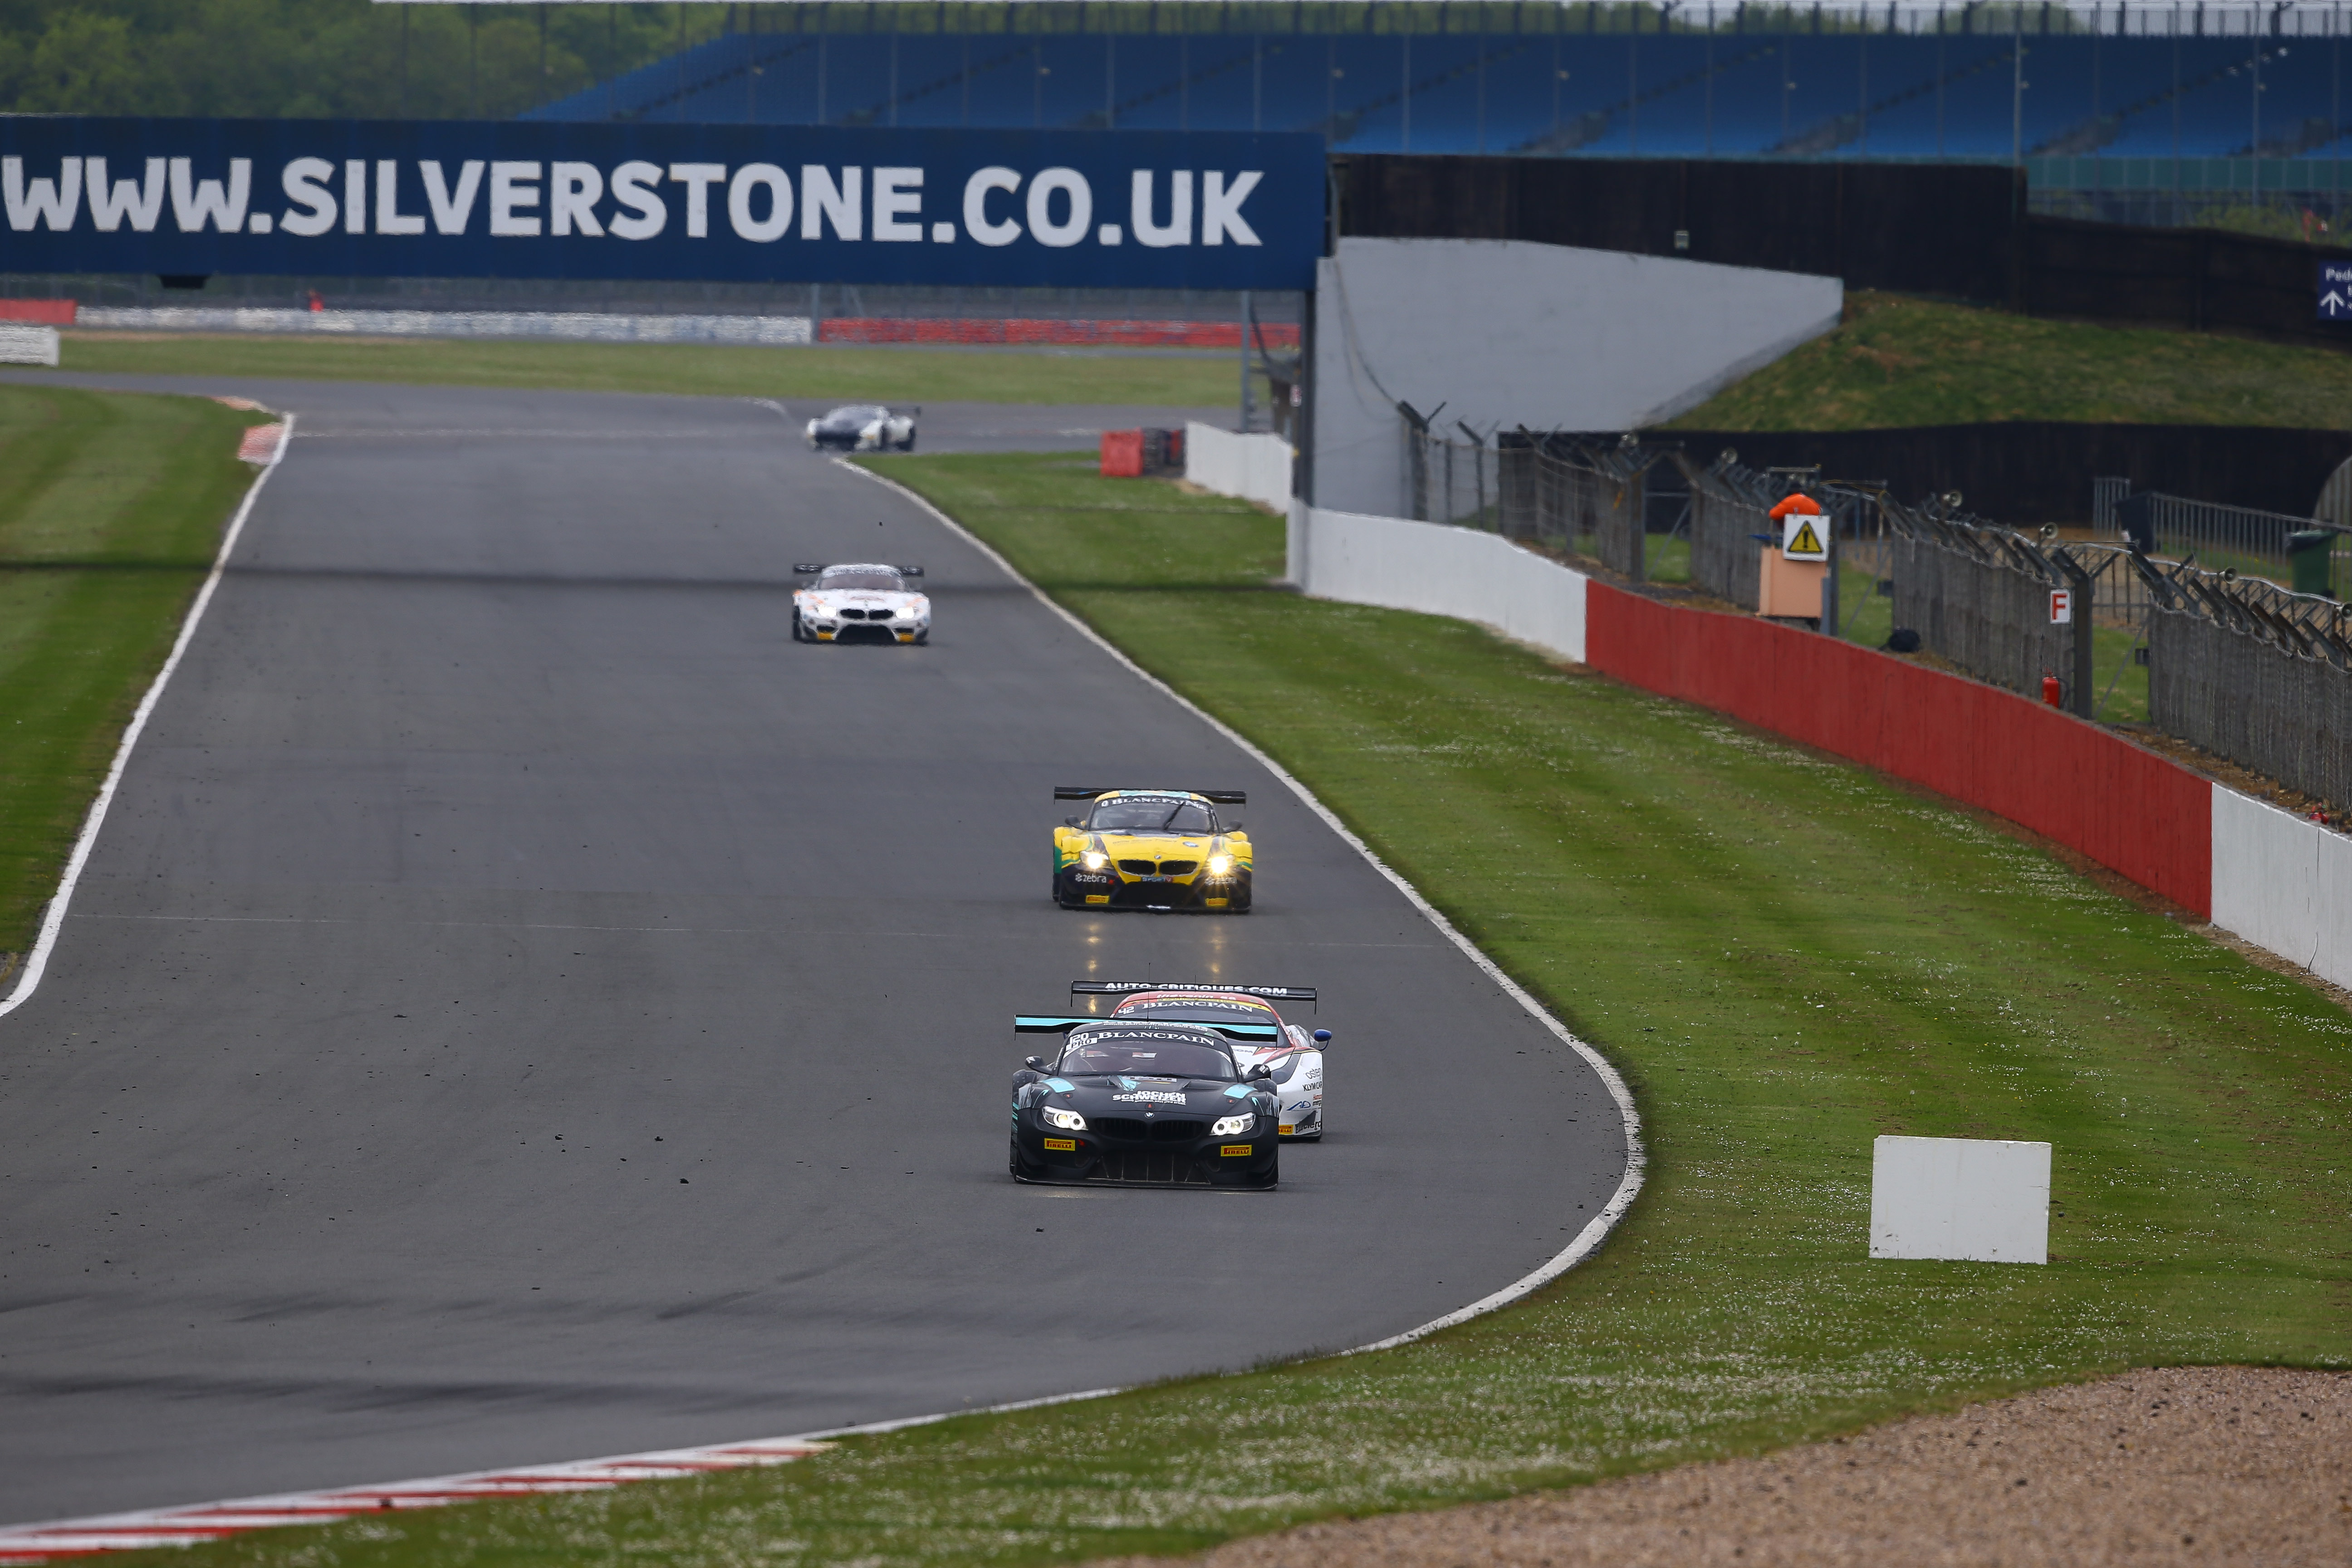 Return to Silverstone: Racing luck deserts Dominik Baumann in ...